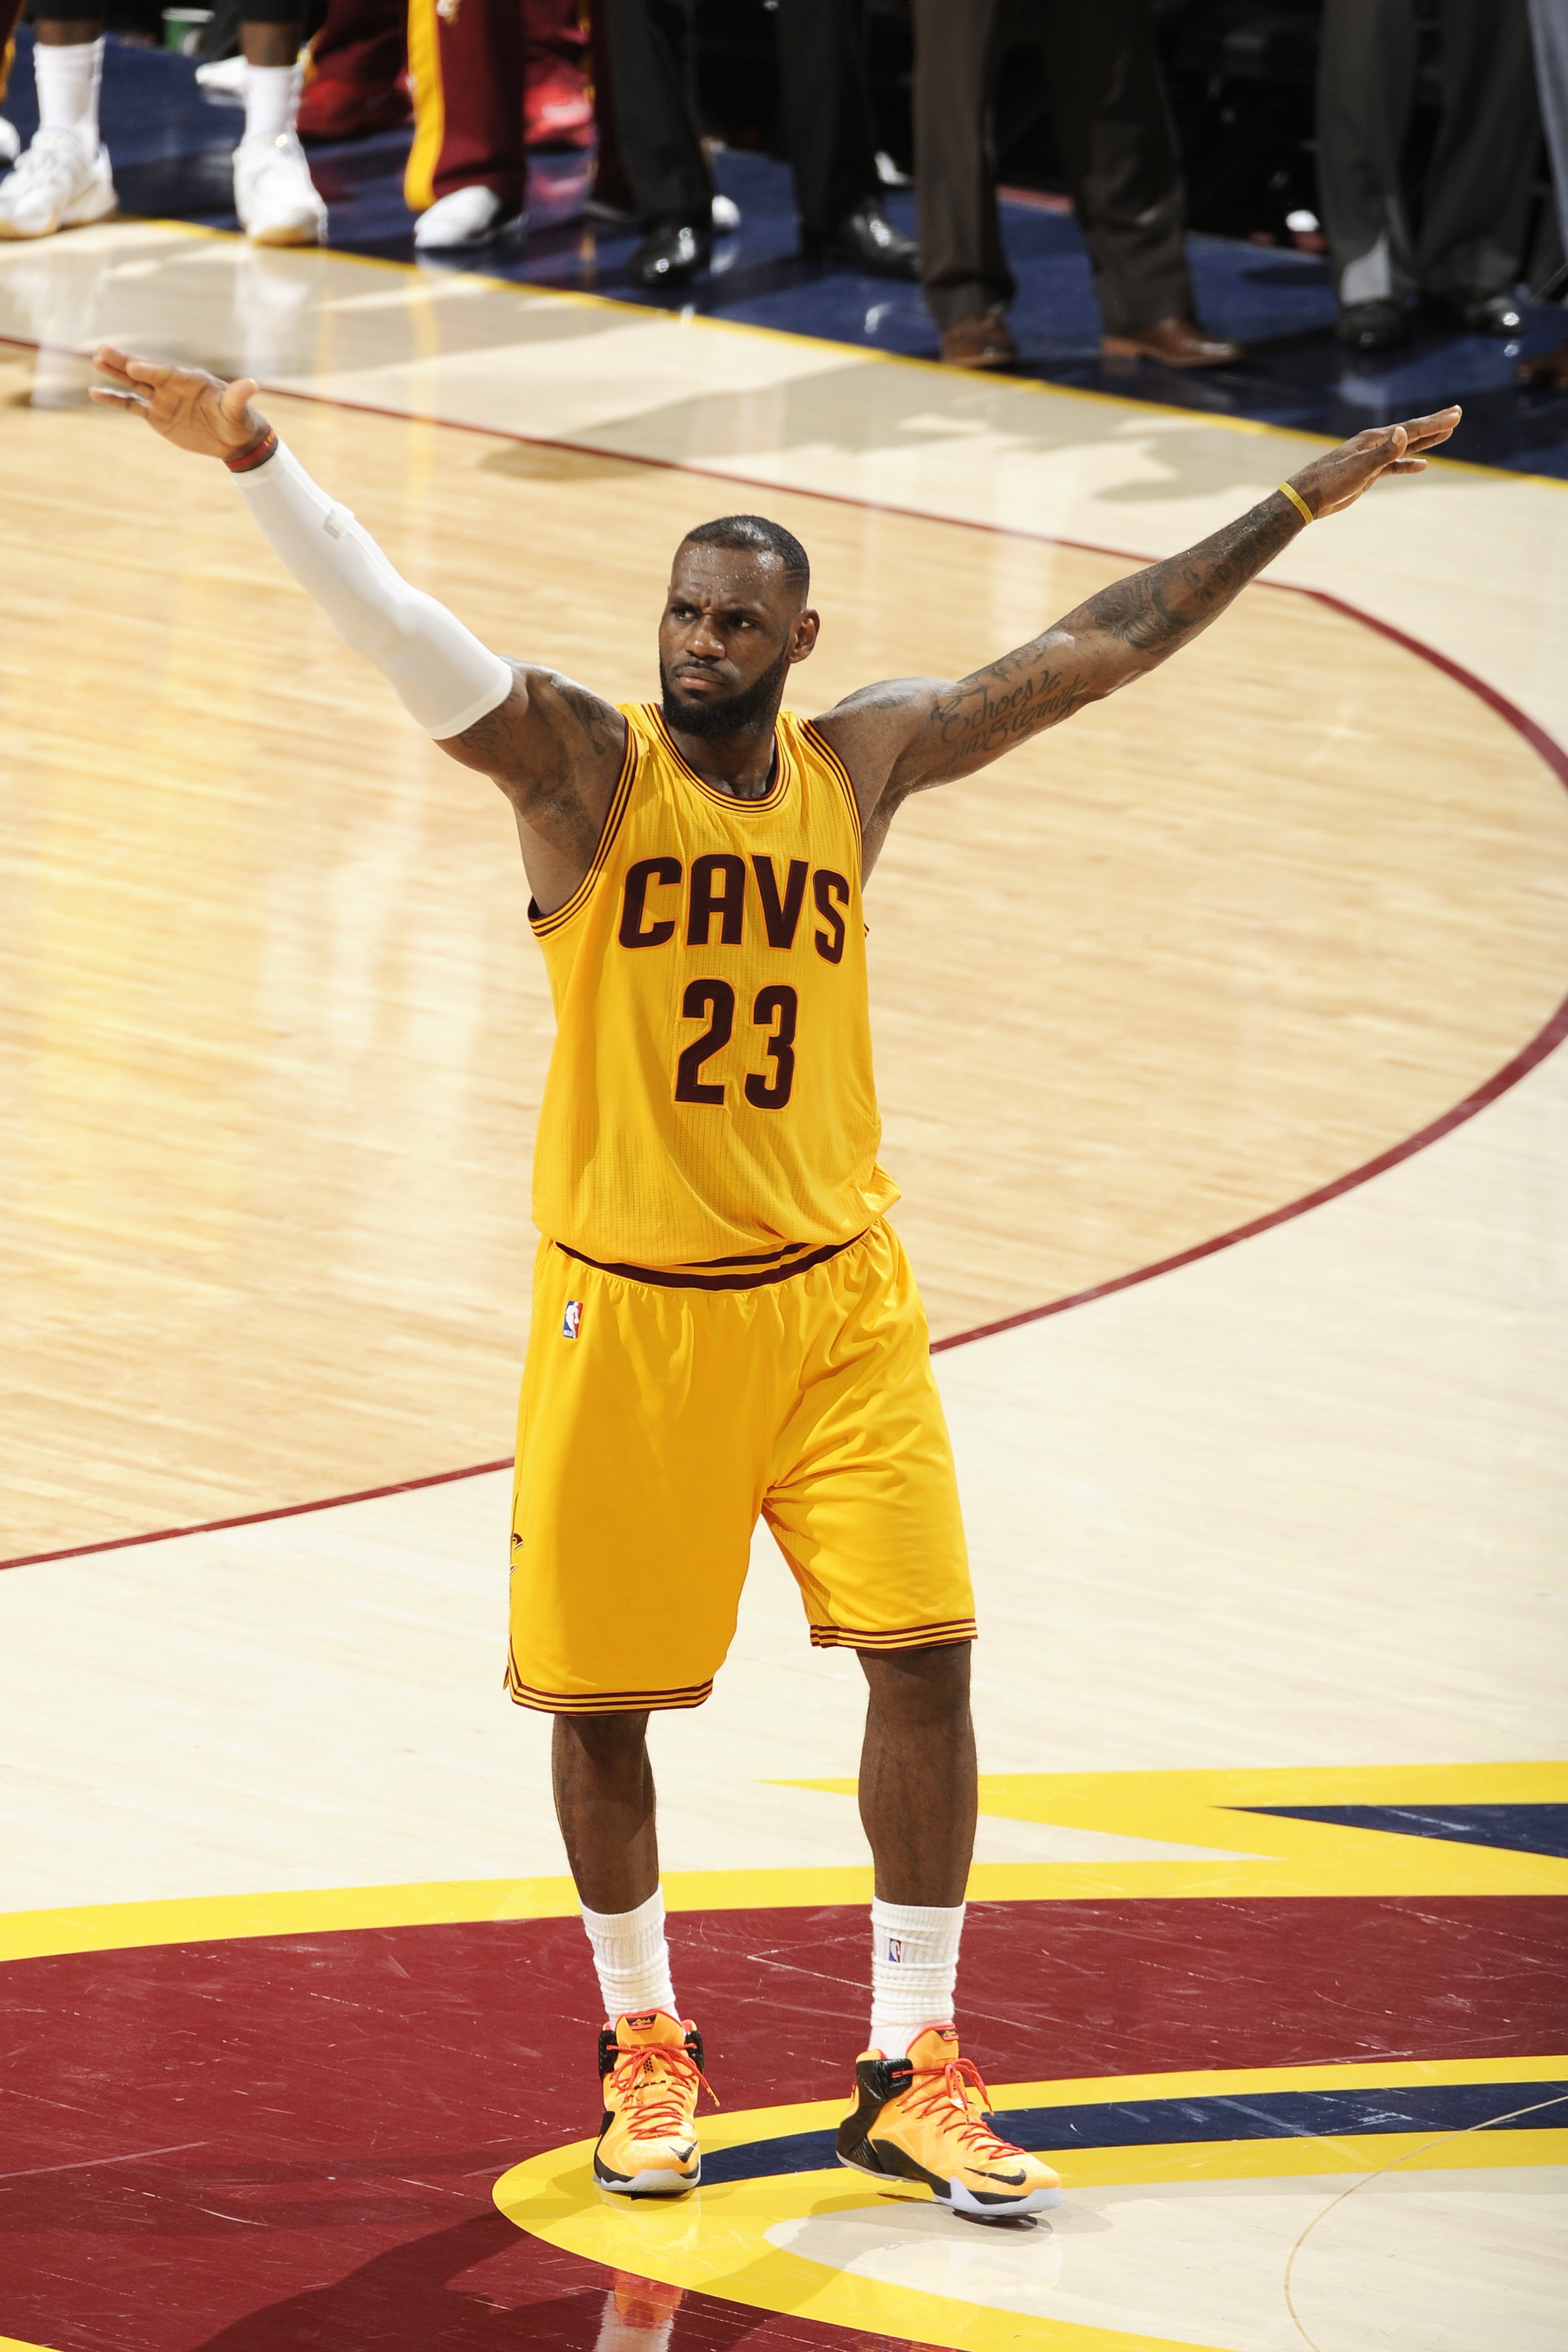 CLEVELAND, OH - JUNE 9:  LeBron James #23 of the Cleveland Cavaliers during the game against the Golden State Warriors in Game Three of the 2015 NBA Finals at The Quicken Loans Arena on June 9, 2015 in Cleveland, Ohio. (Photo by David Kyle/NBAE via Getty